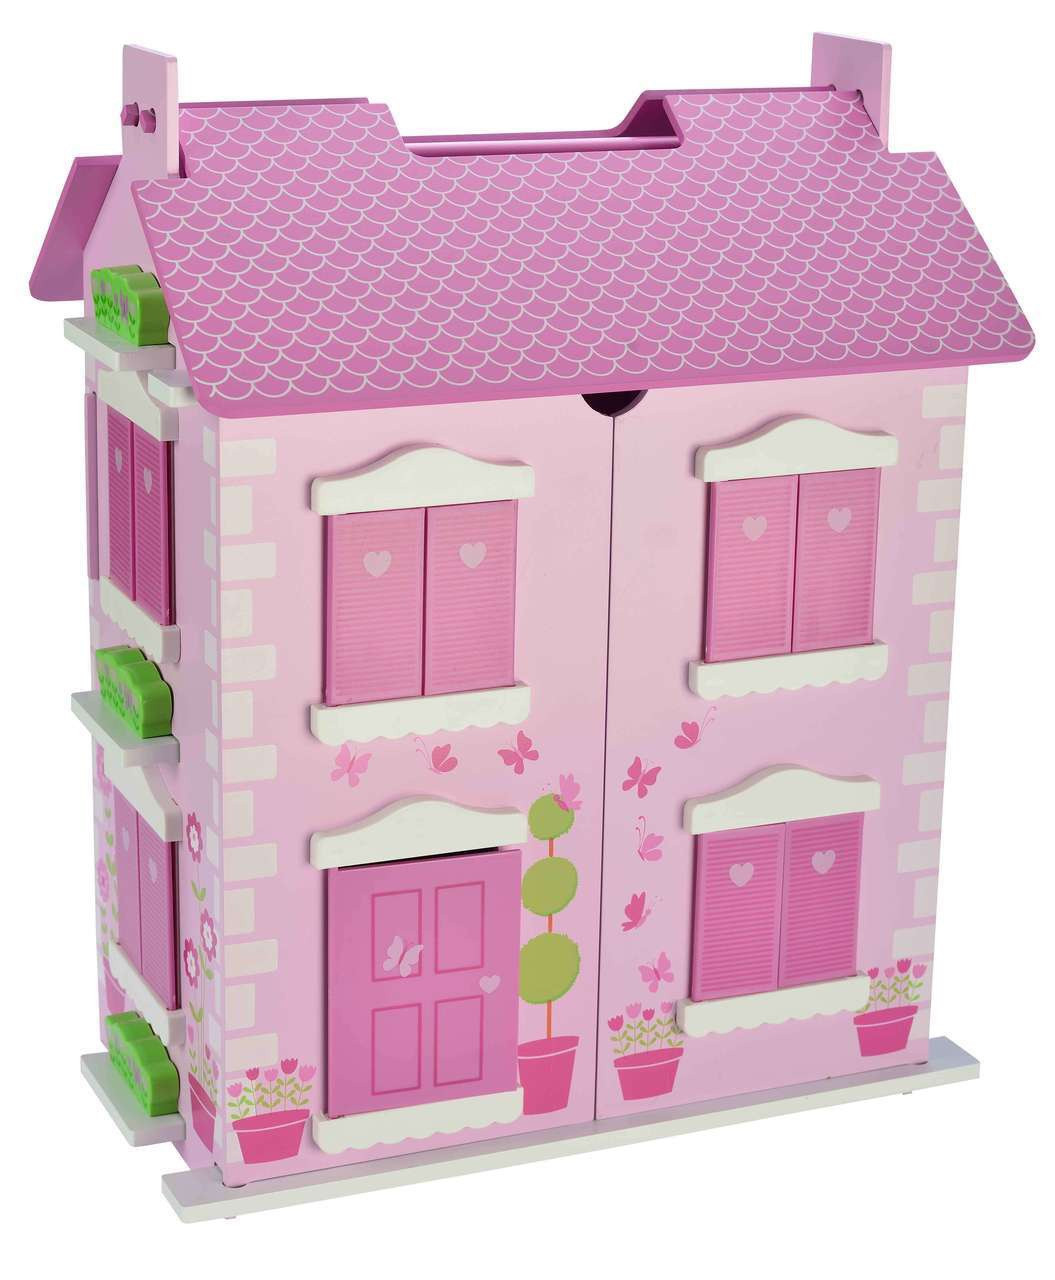 Bubbadoo Wooden Pastel Pink Doll House